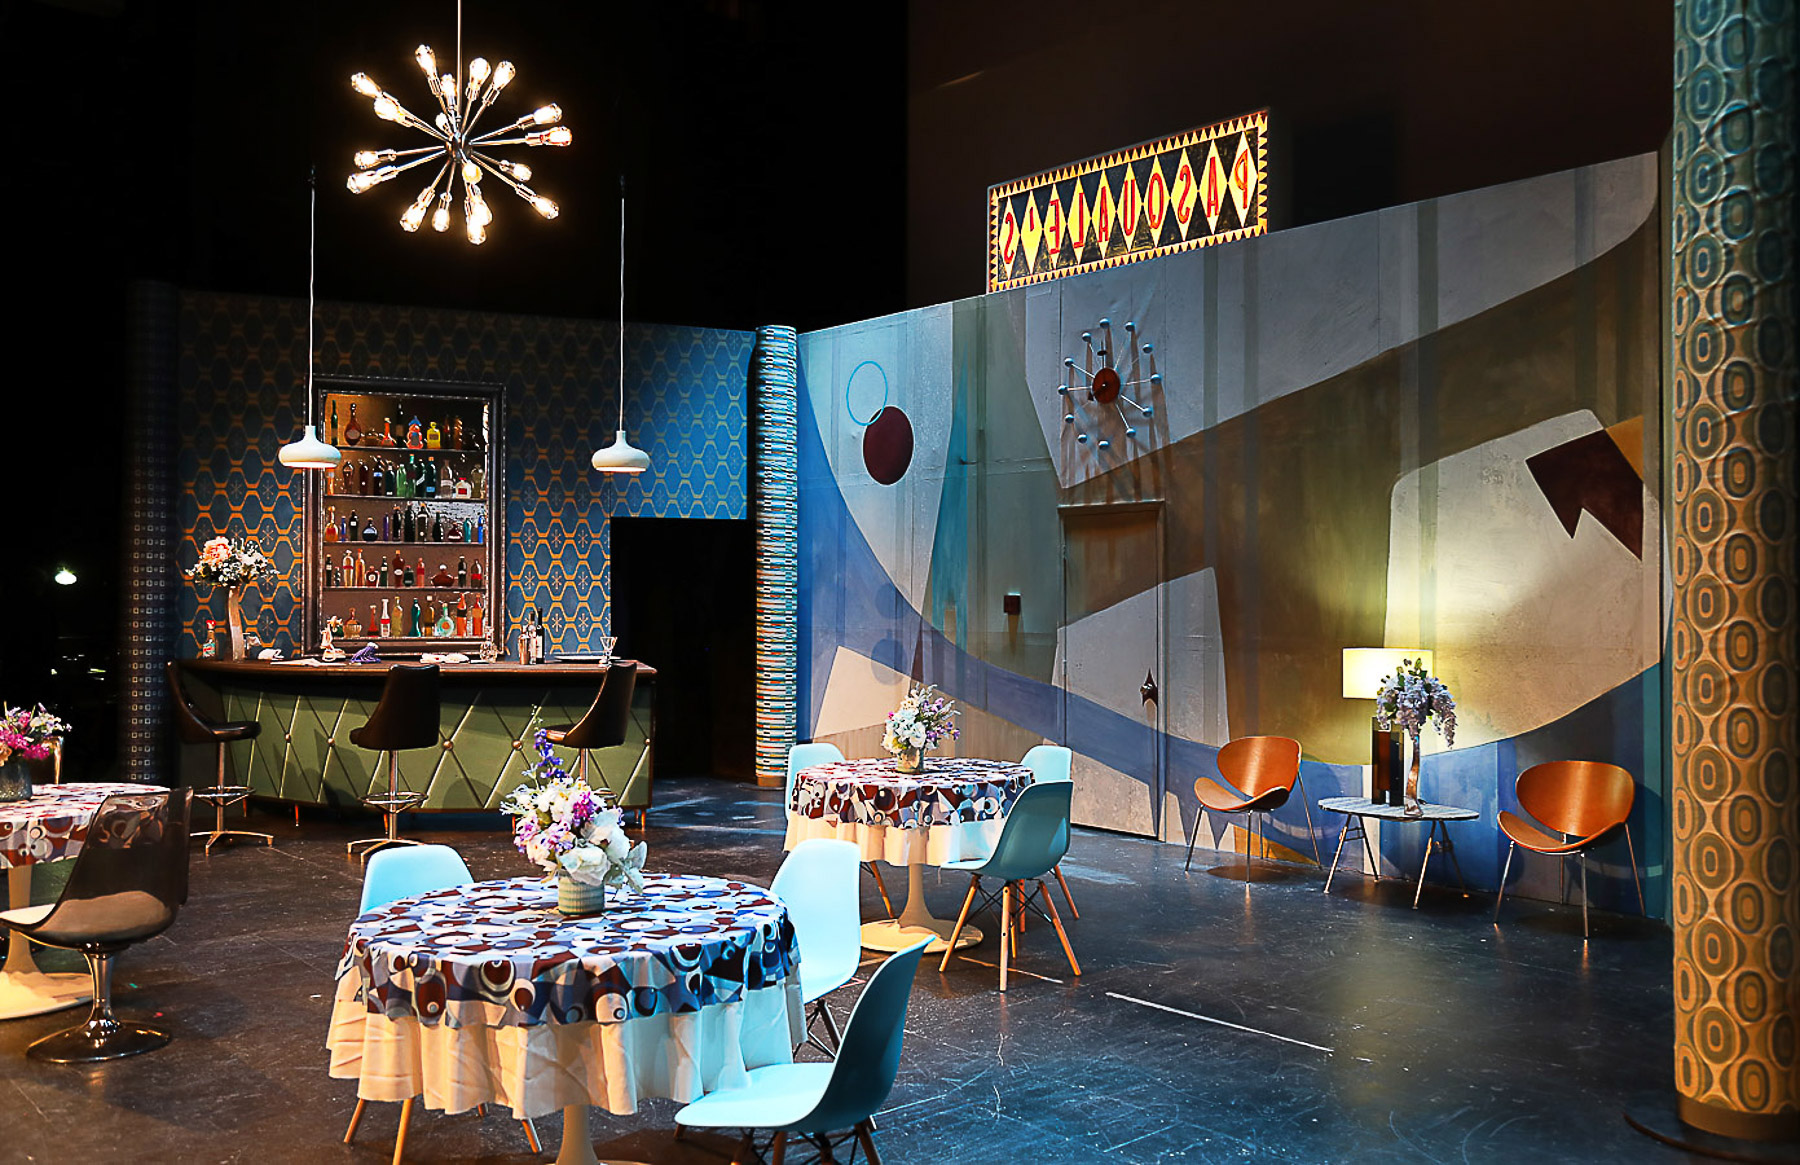 Don Pascuale stage set using mid-century modern motifs